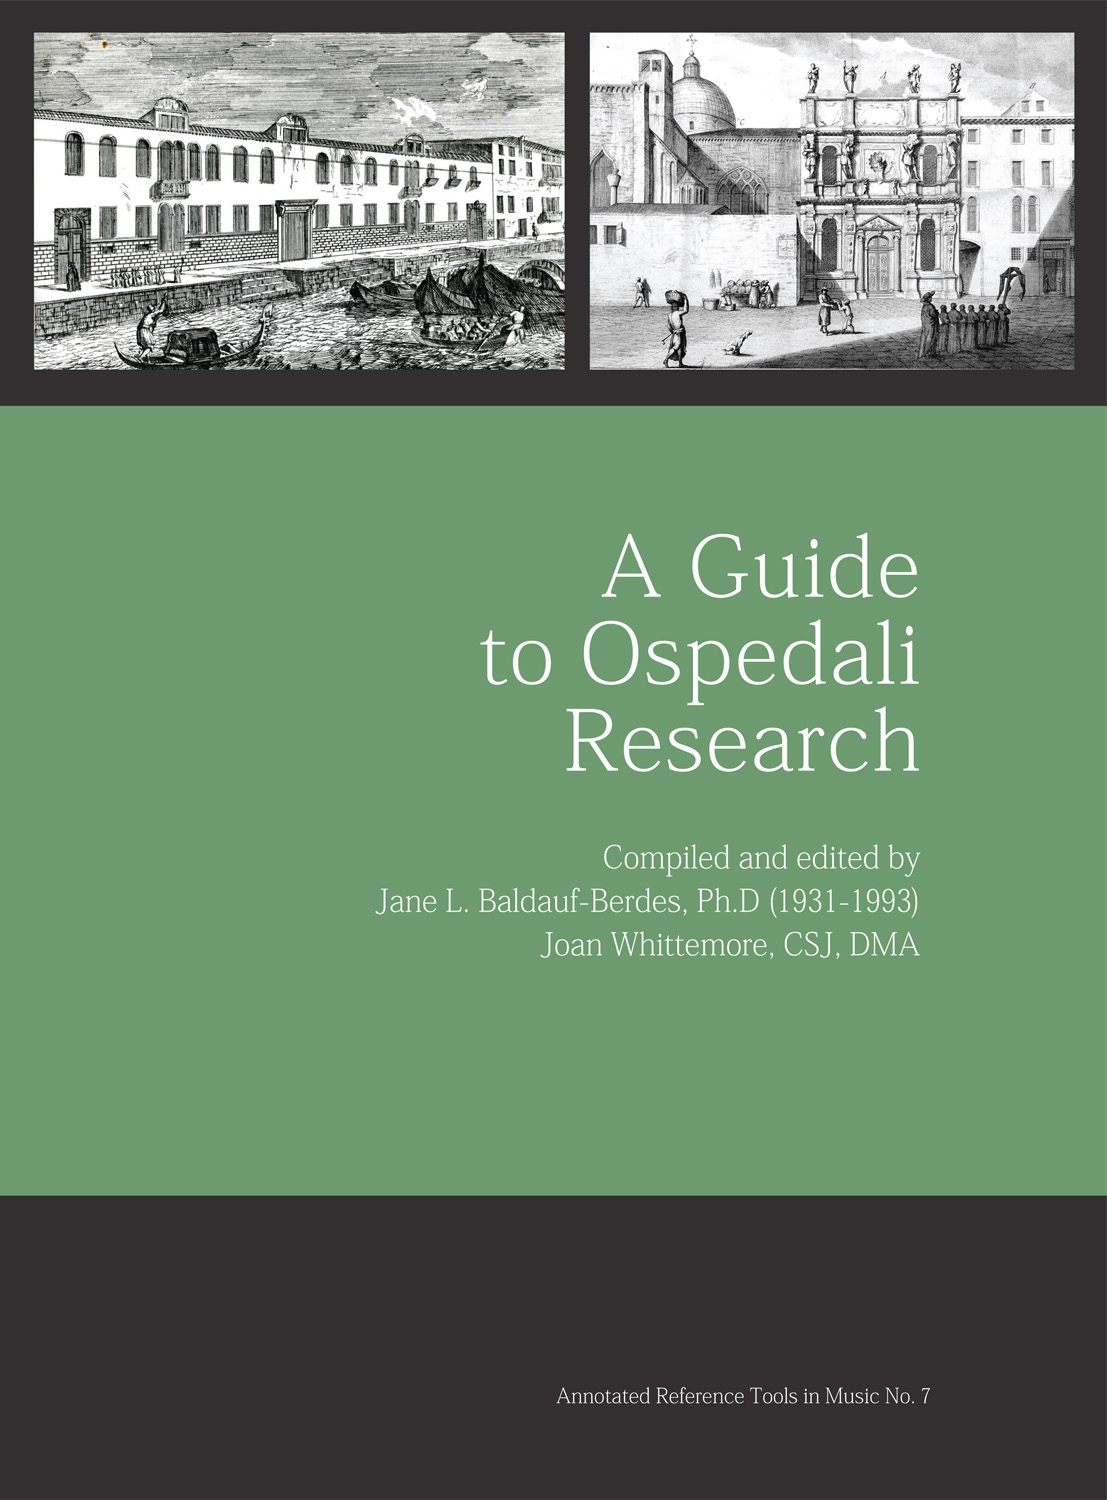 A Guide to Ospedali Research